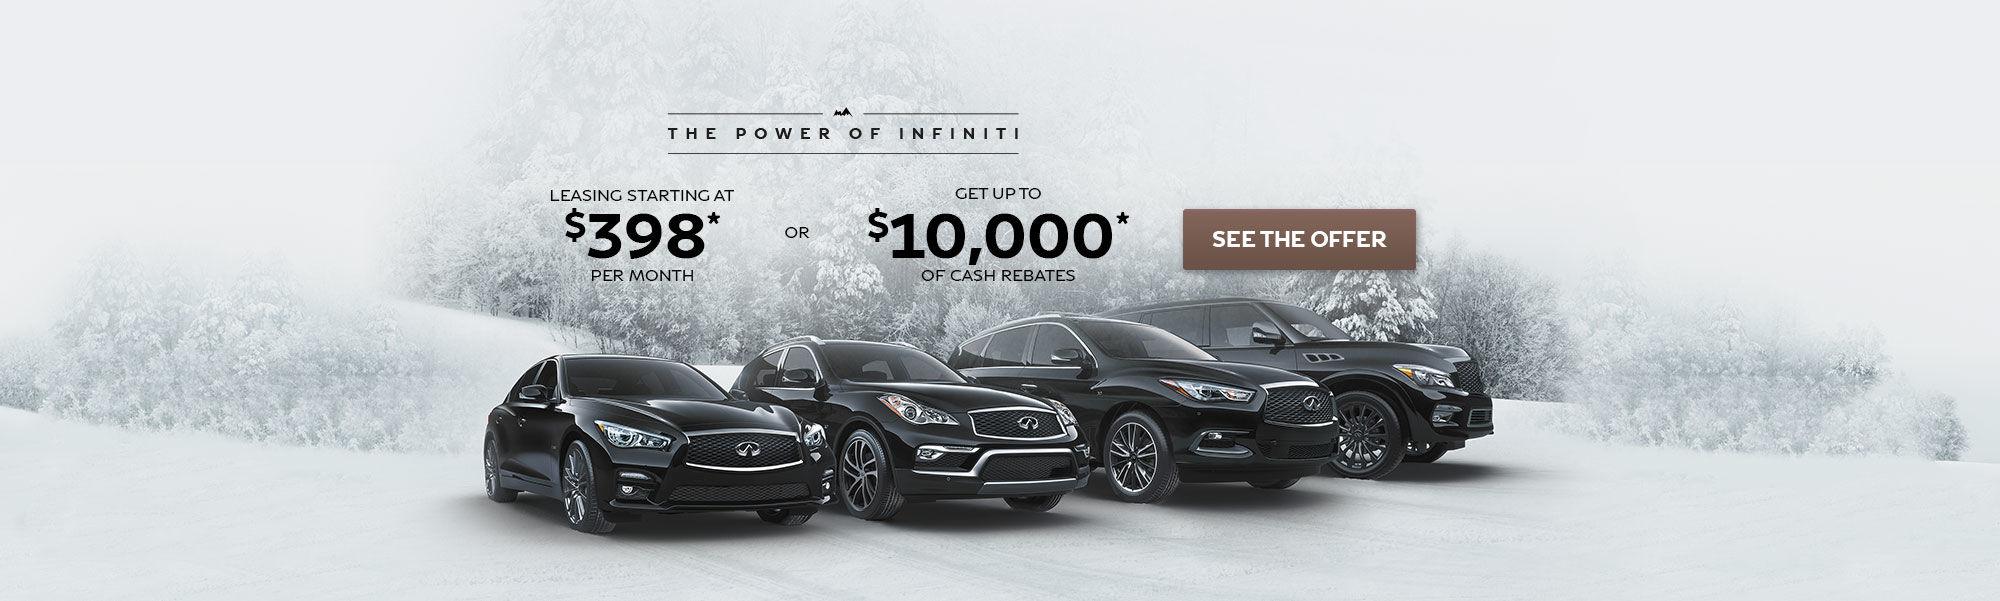 The Power of Infiniti - Event